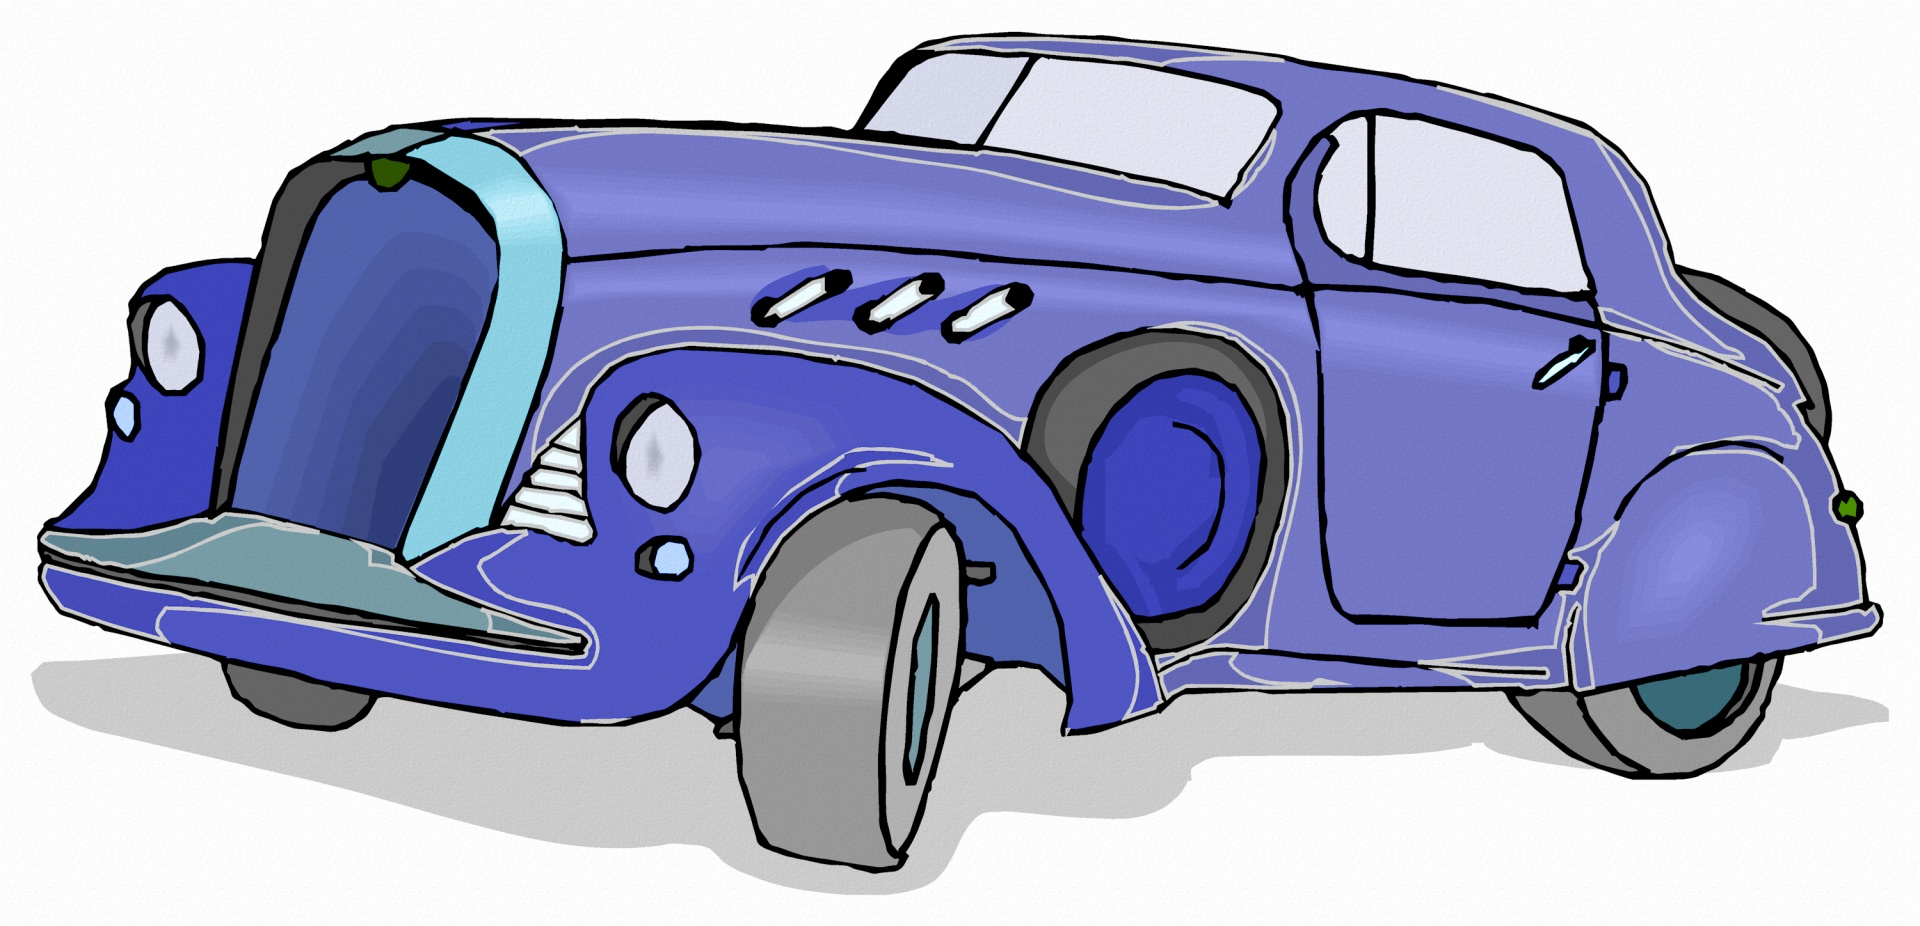 Only Real Car Fans Will Remember These Cartoon Cars Are You Up For The Challenge